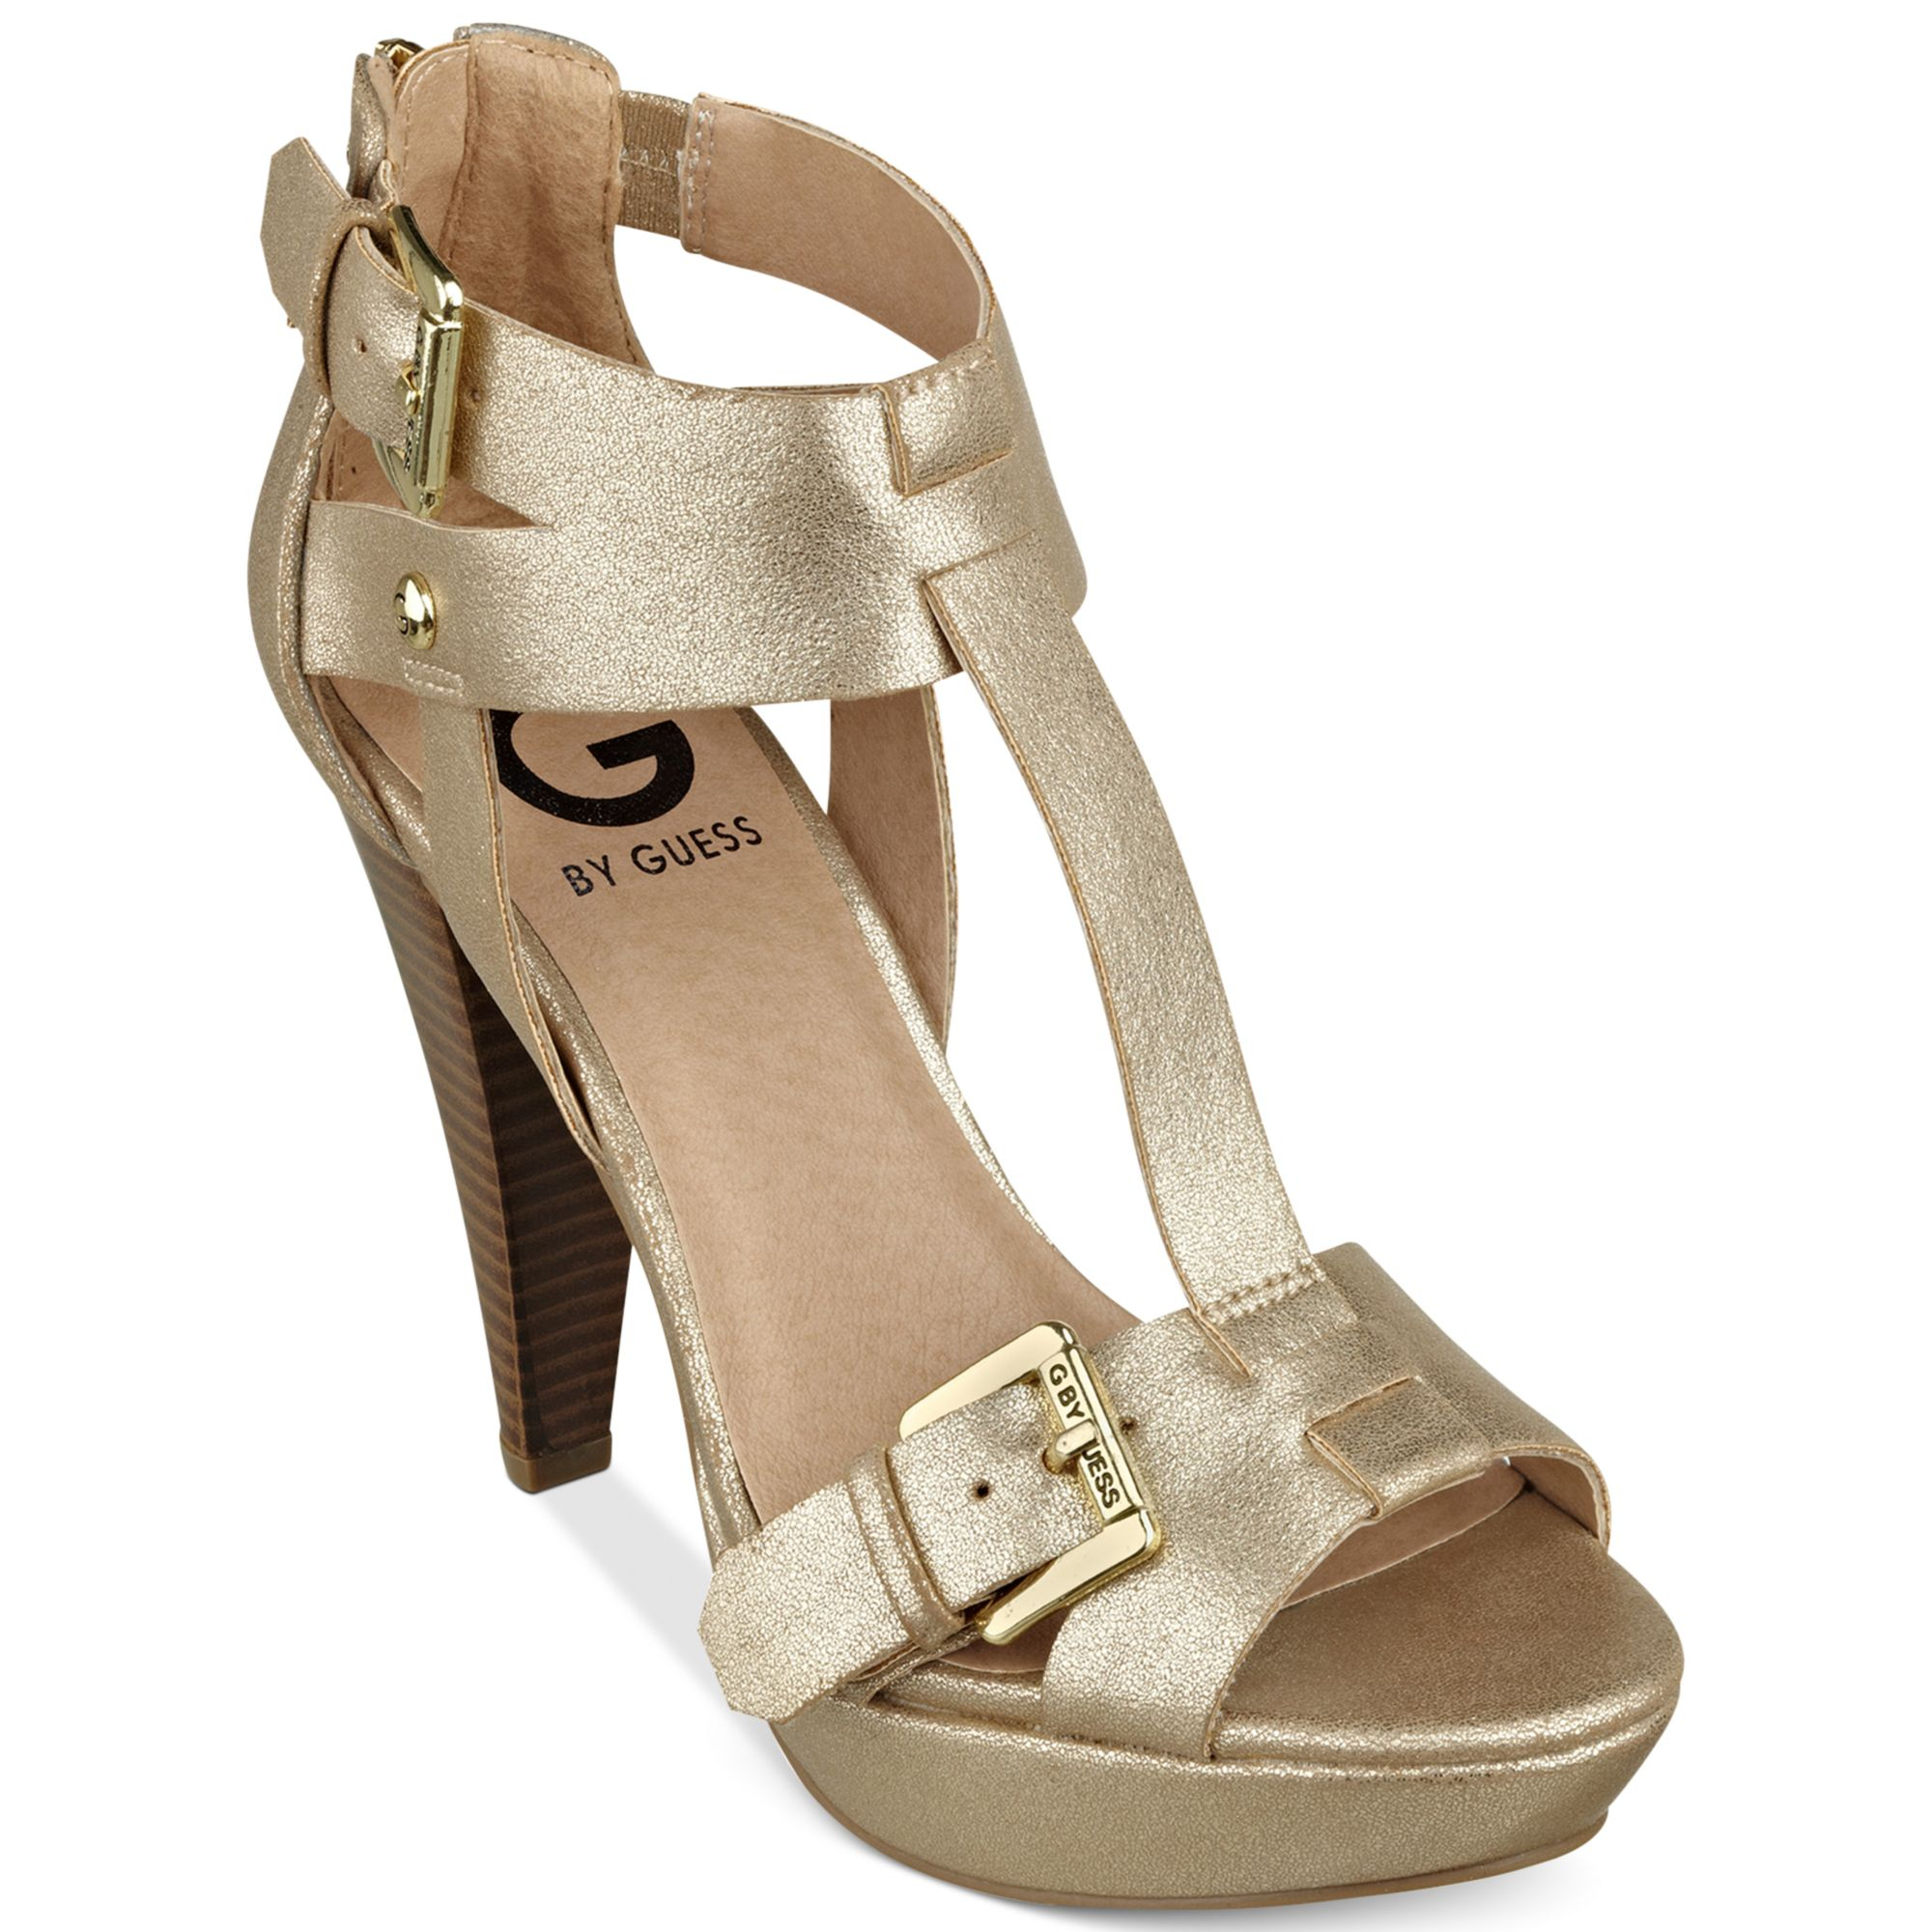 e19c55878c27 Lyst - G by Guess Womens Lychee Platform Sandals in Metallic